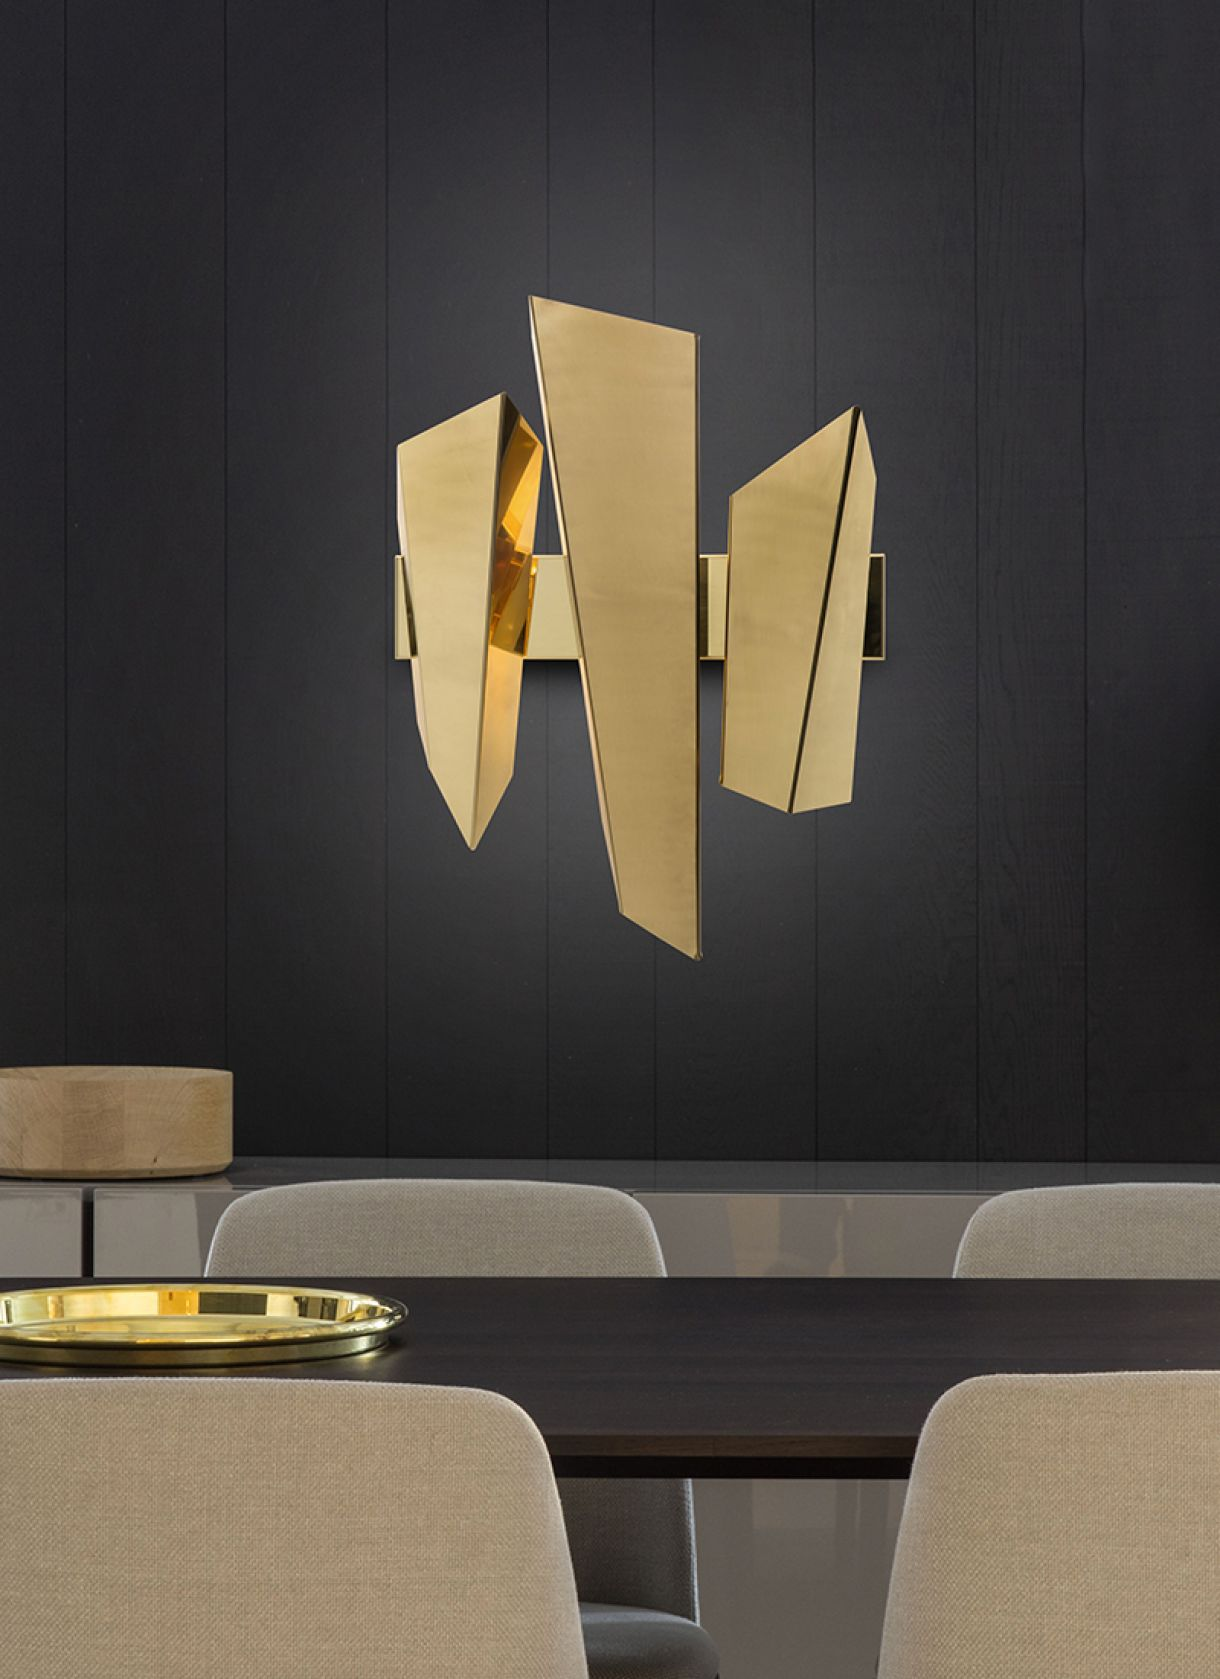 Wright - Wall lamp 1 - element # 1